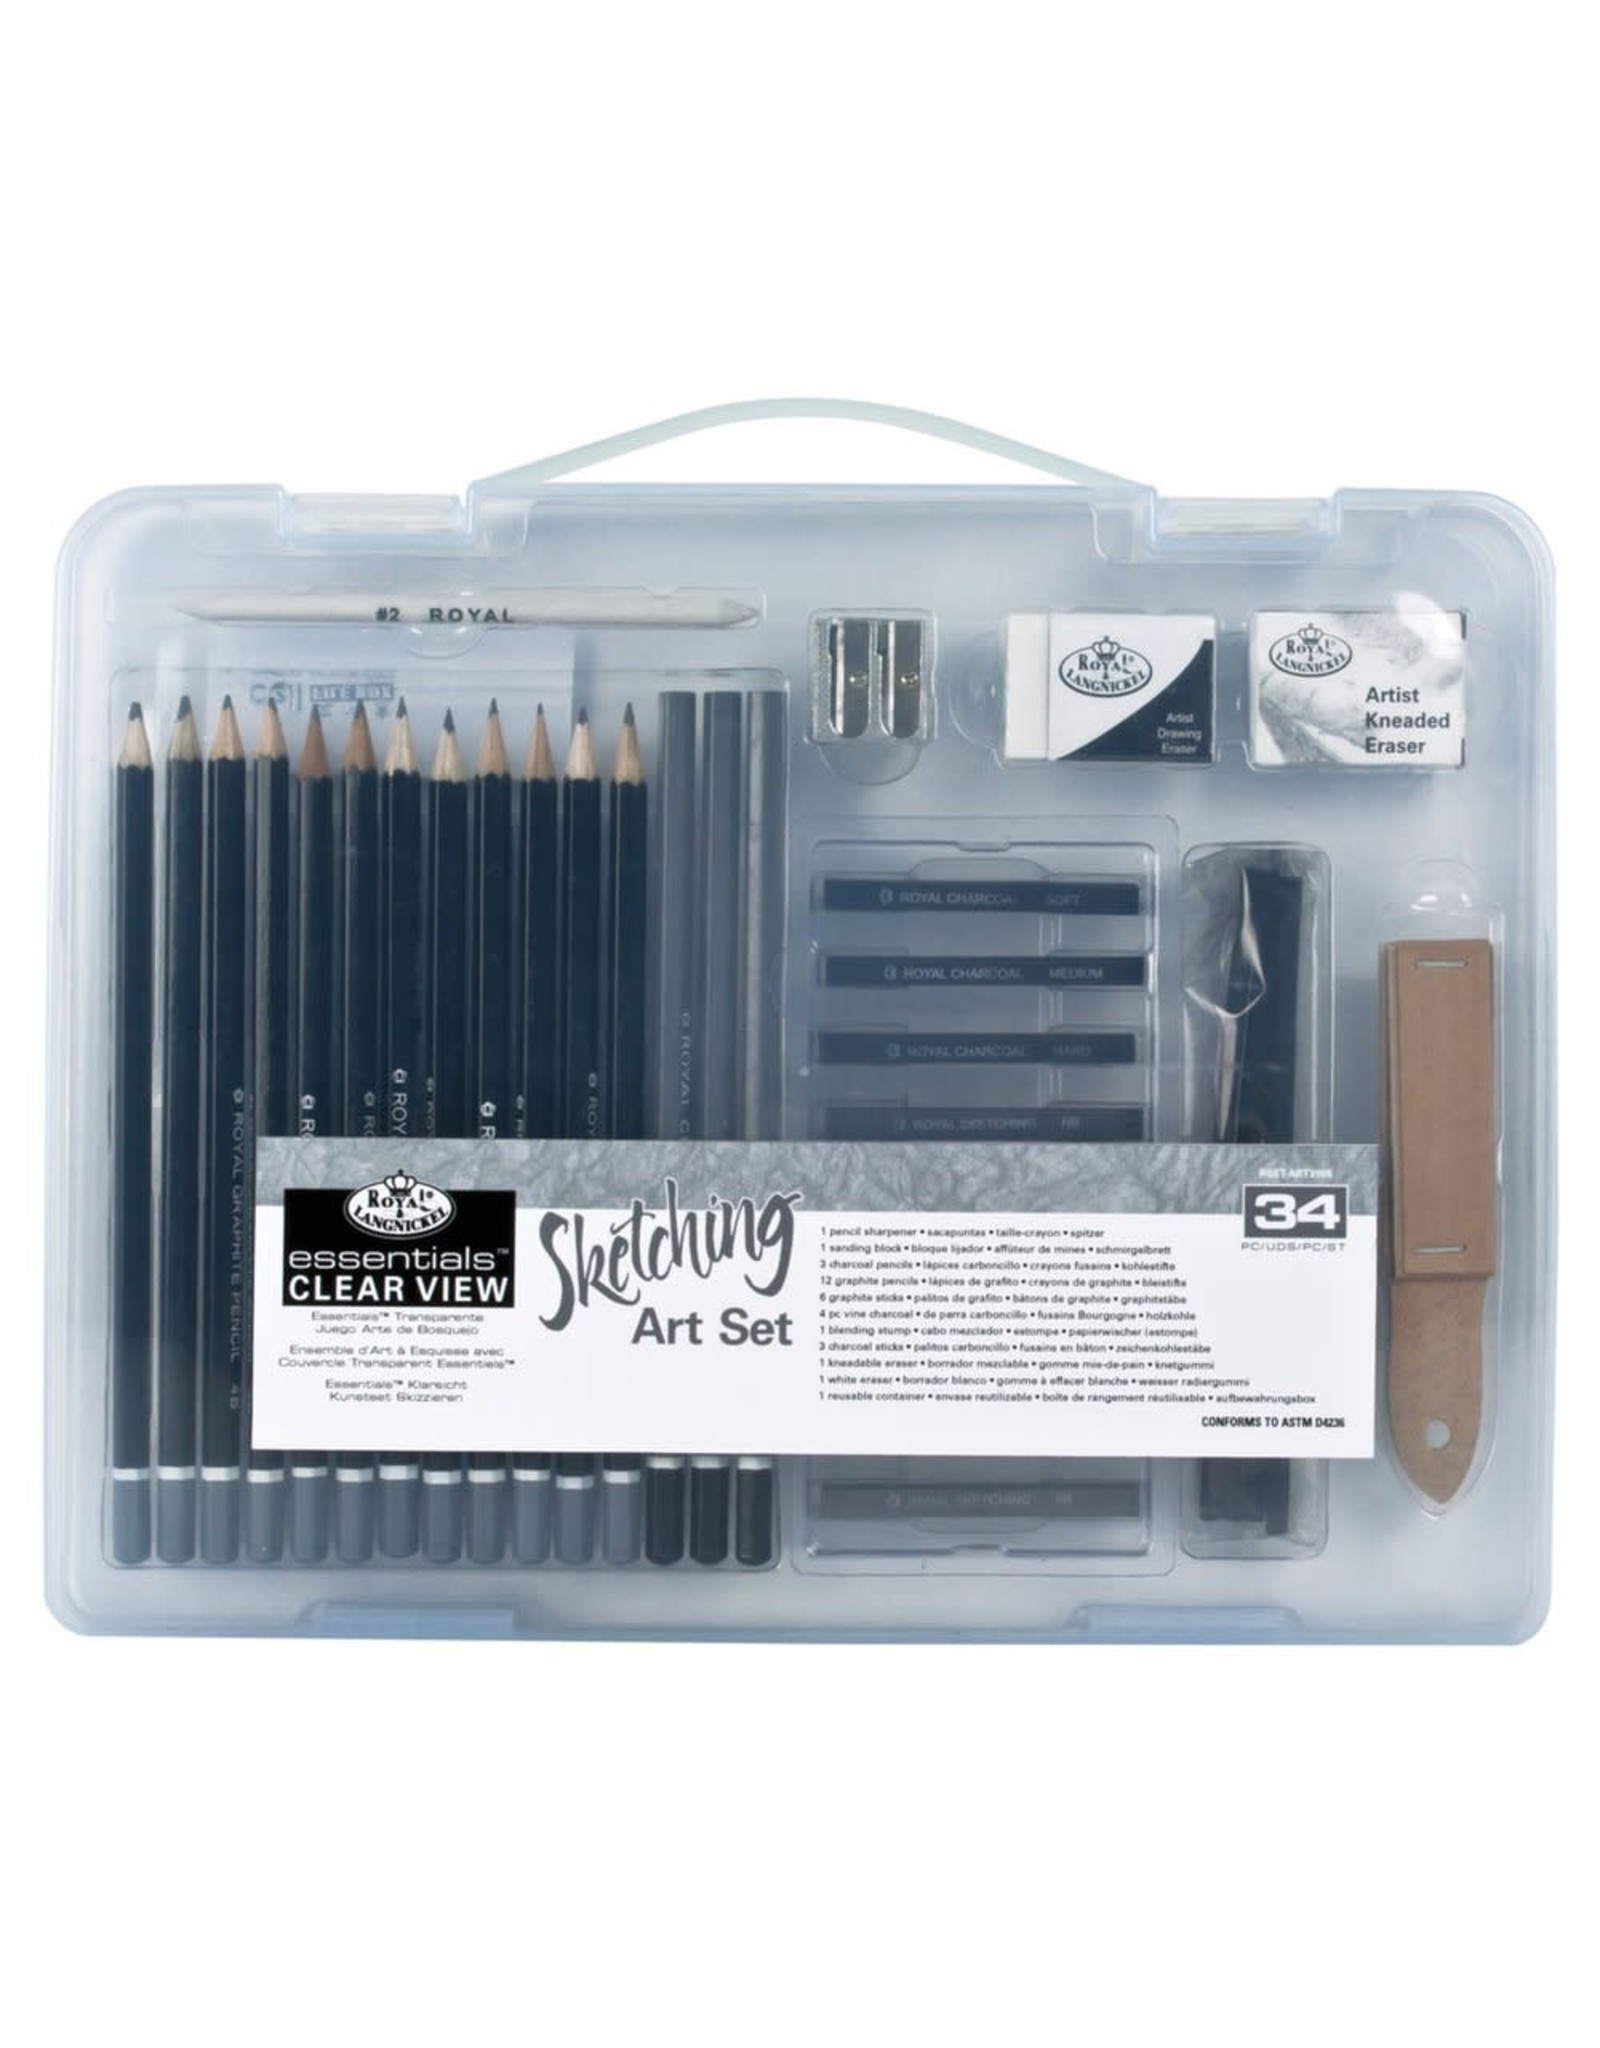 Royal and Langnickel Small Clear View, Sketching Art Set